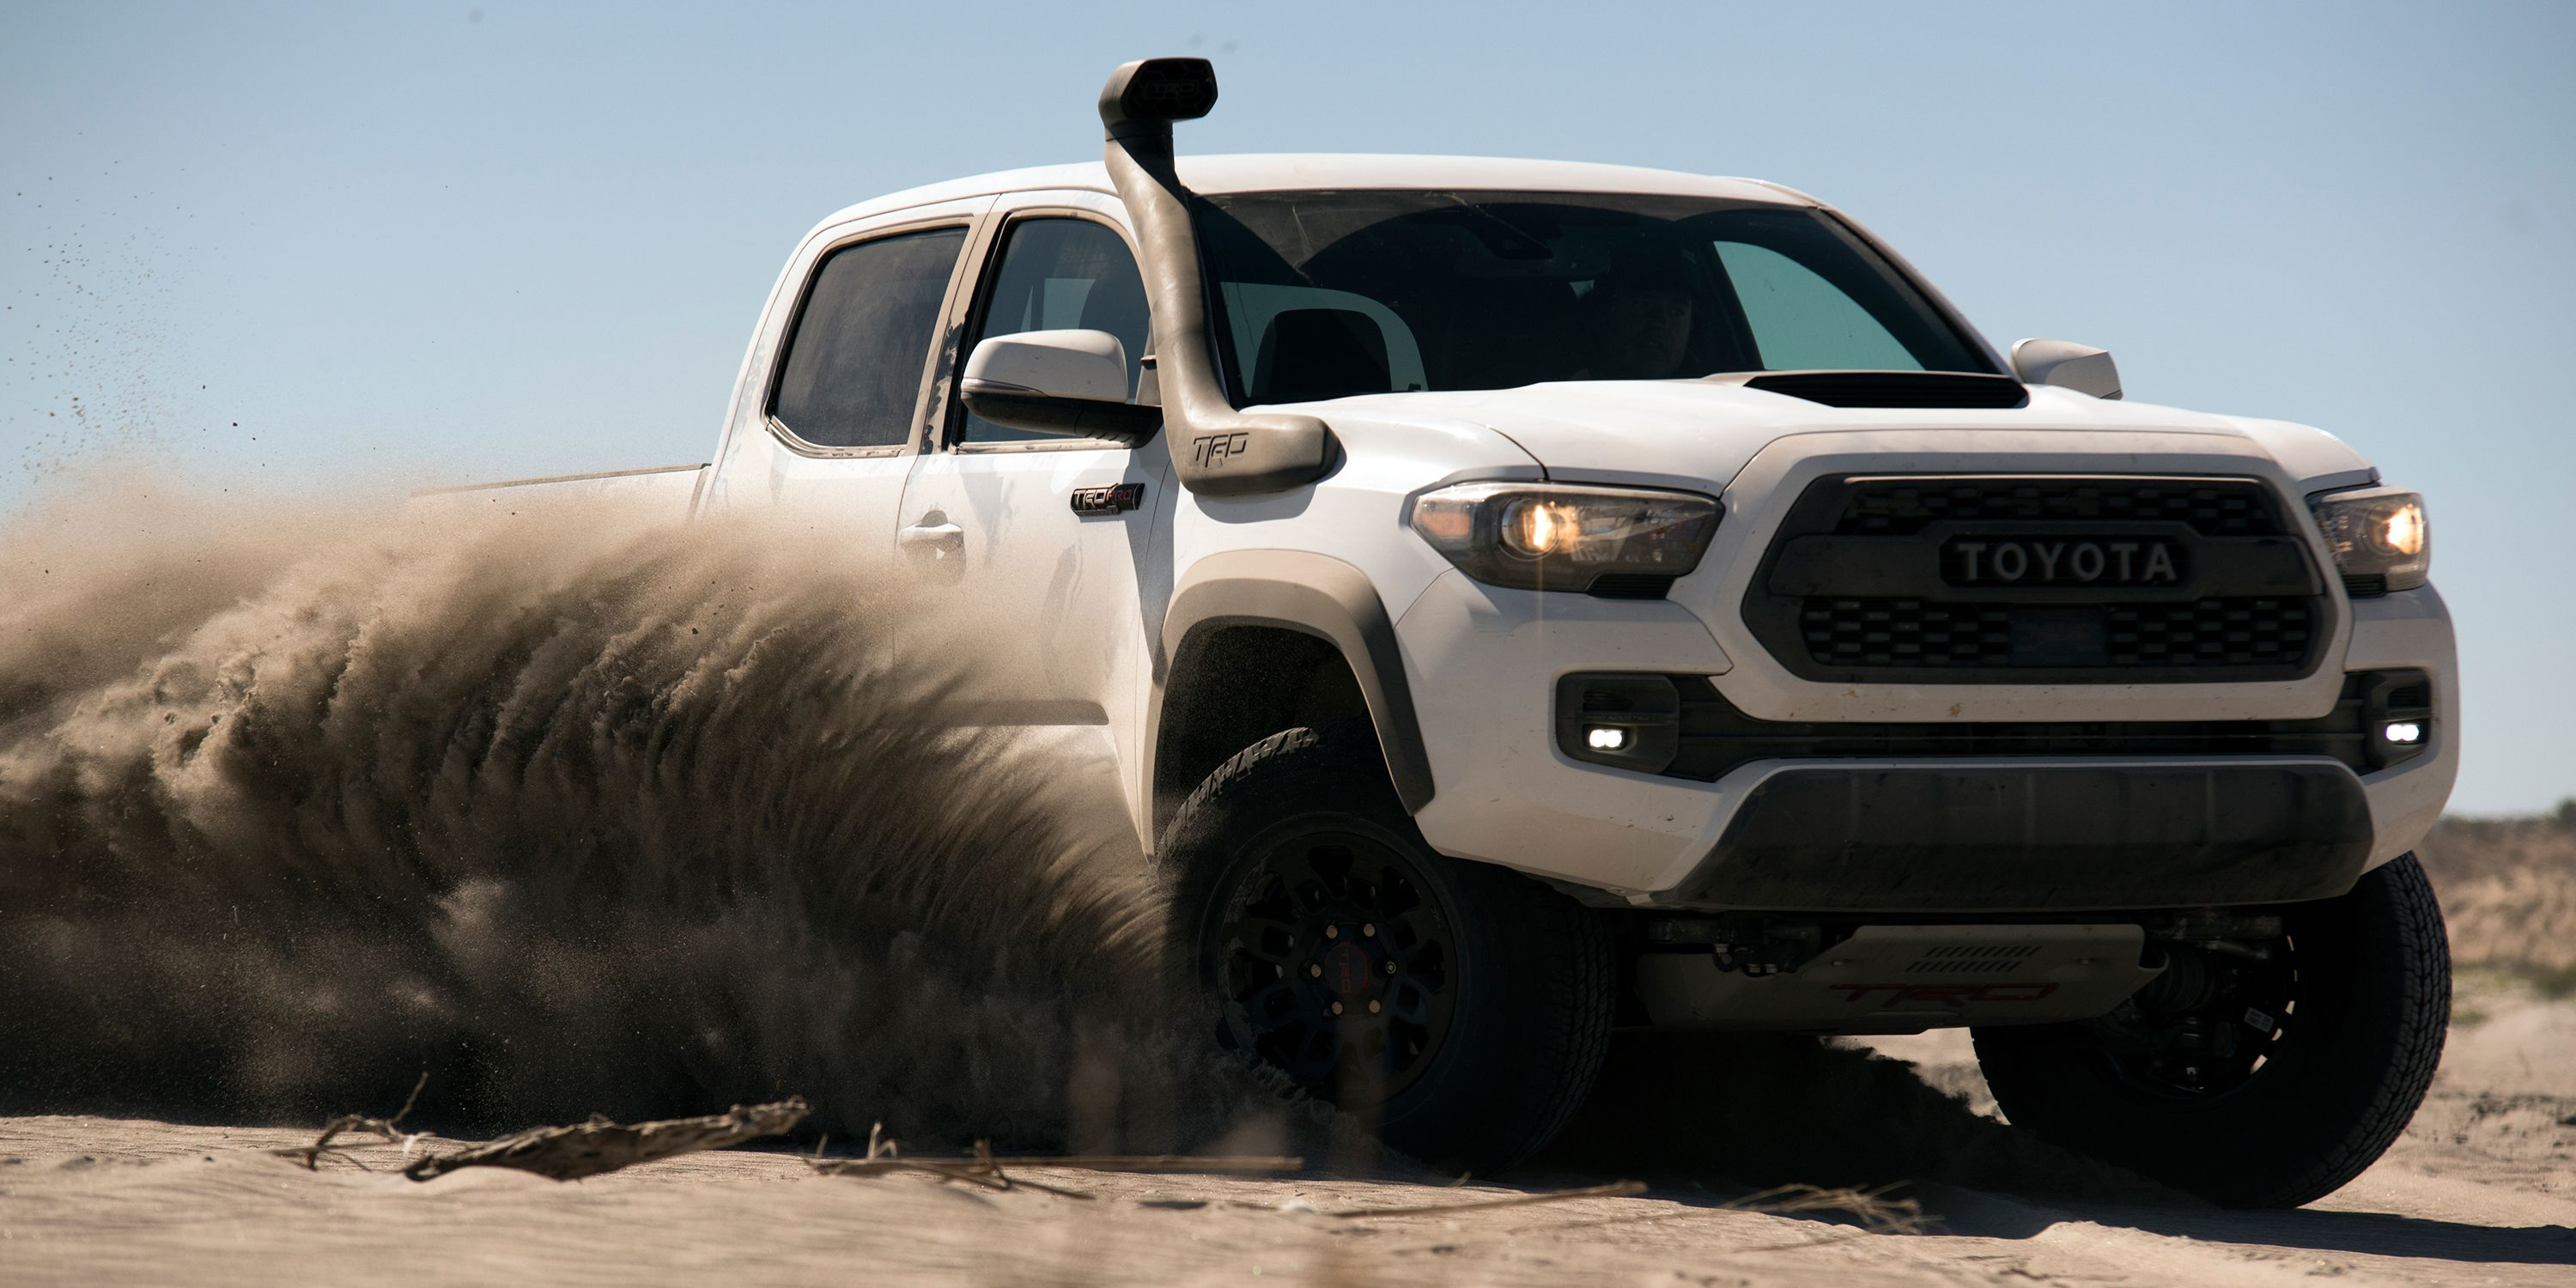 20 Best Off Road Vehicles In 2018 Top Off Road Cars Suvs Of All Time